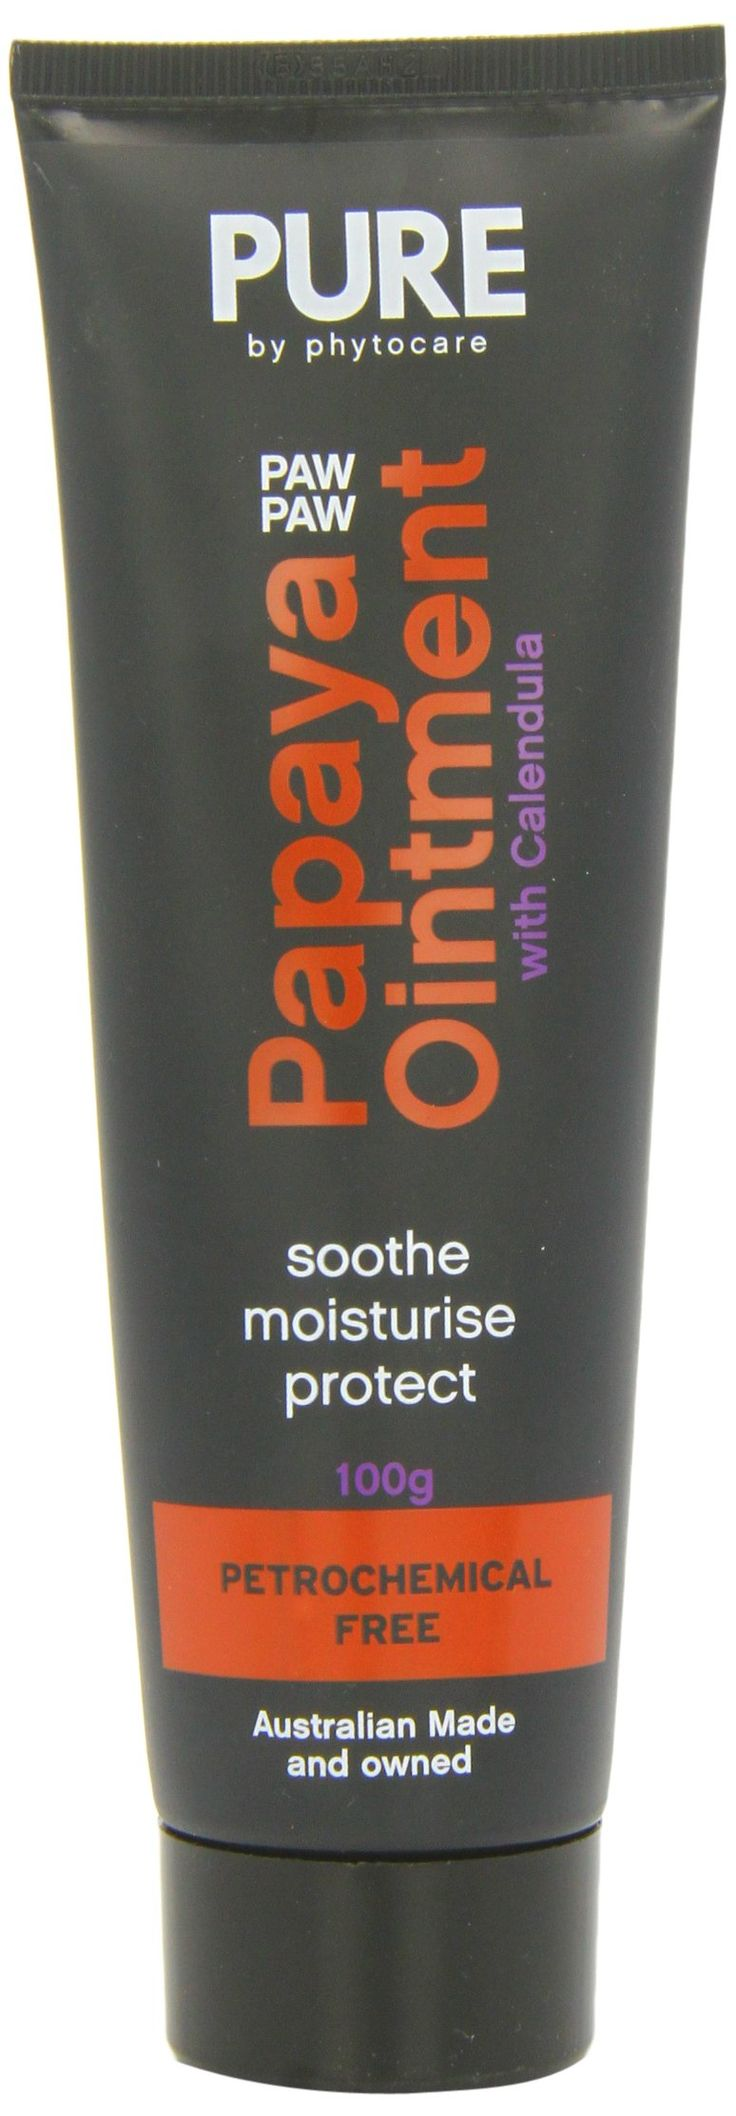 Phytocare Pure Papaya Ointment Tube 100g better with cloth nappies? BOUGHT